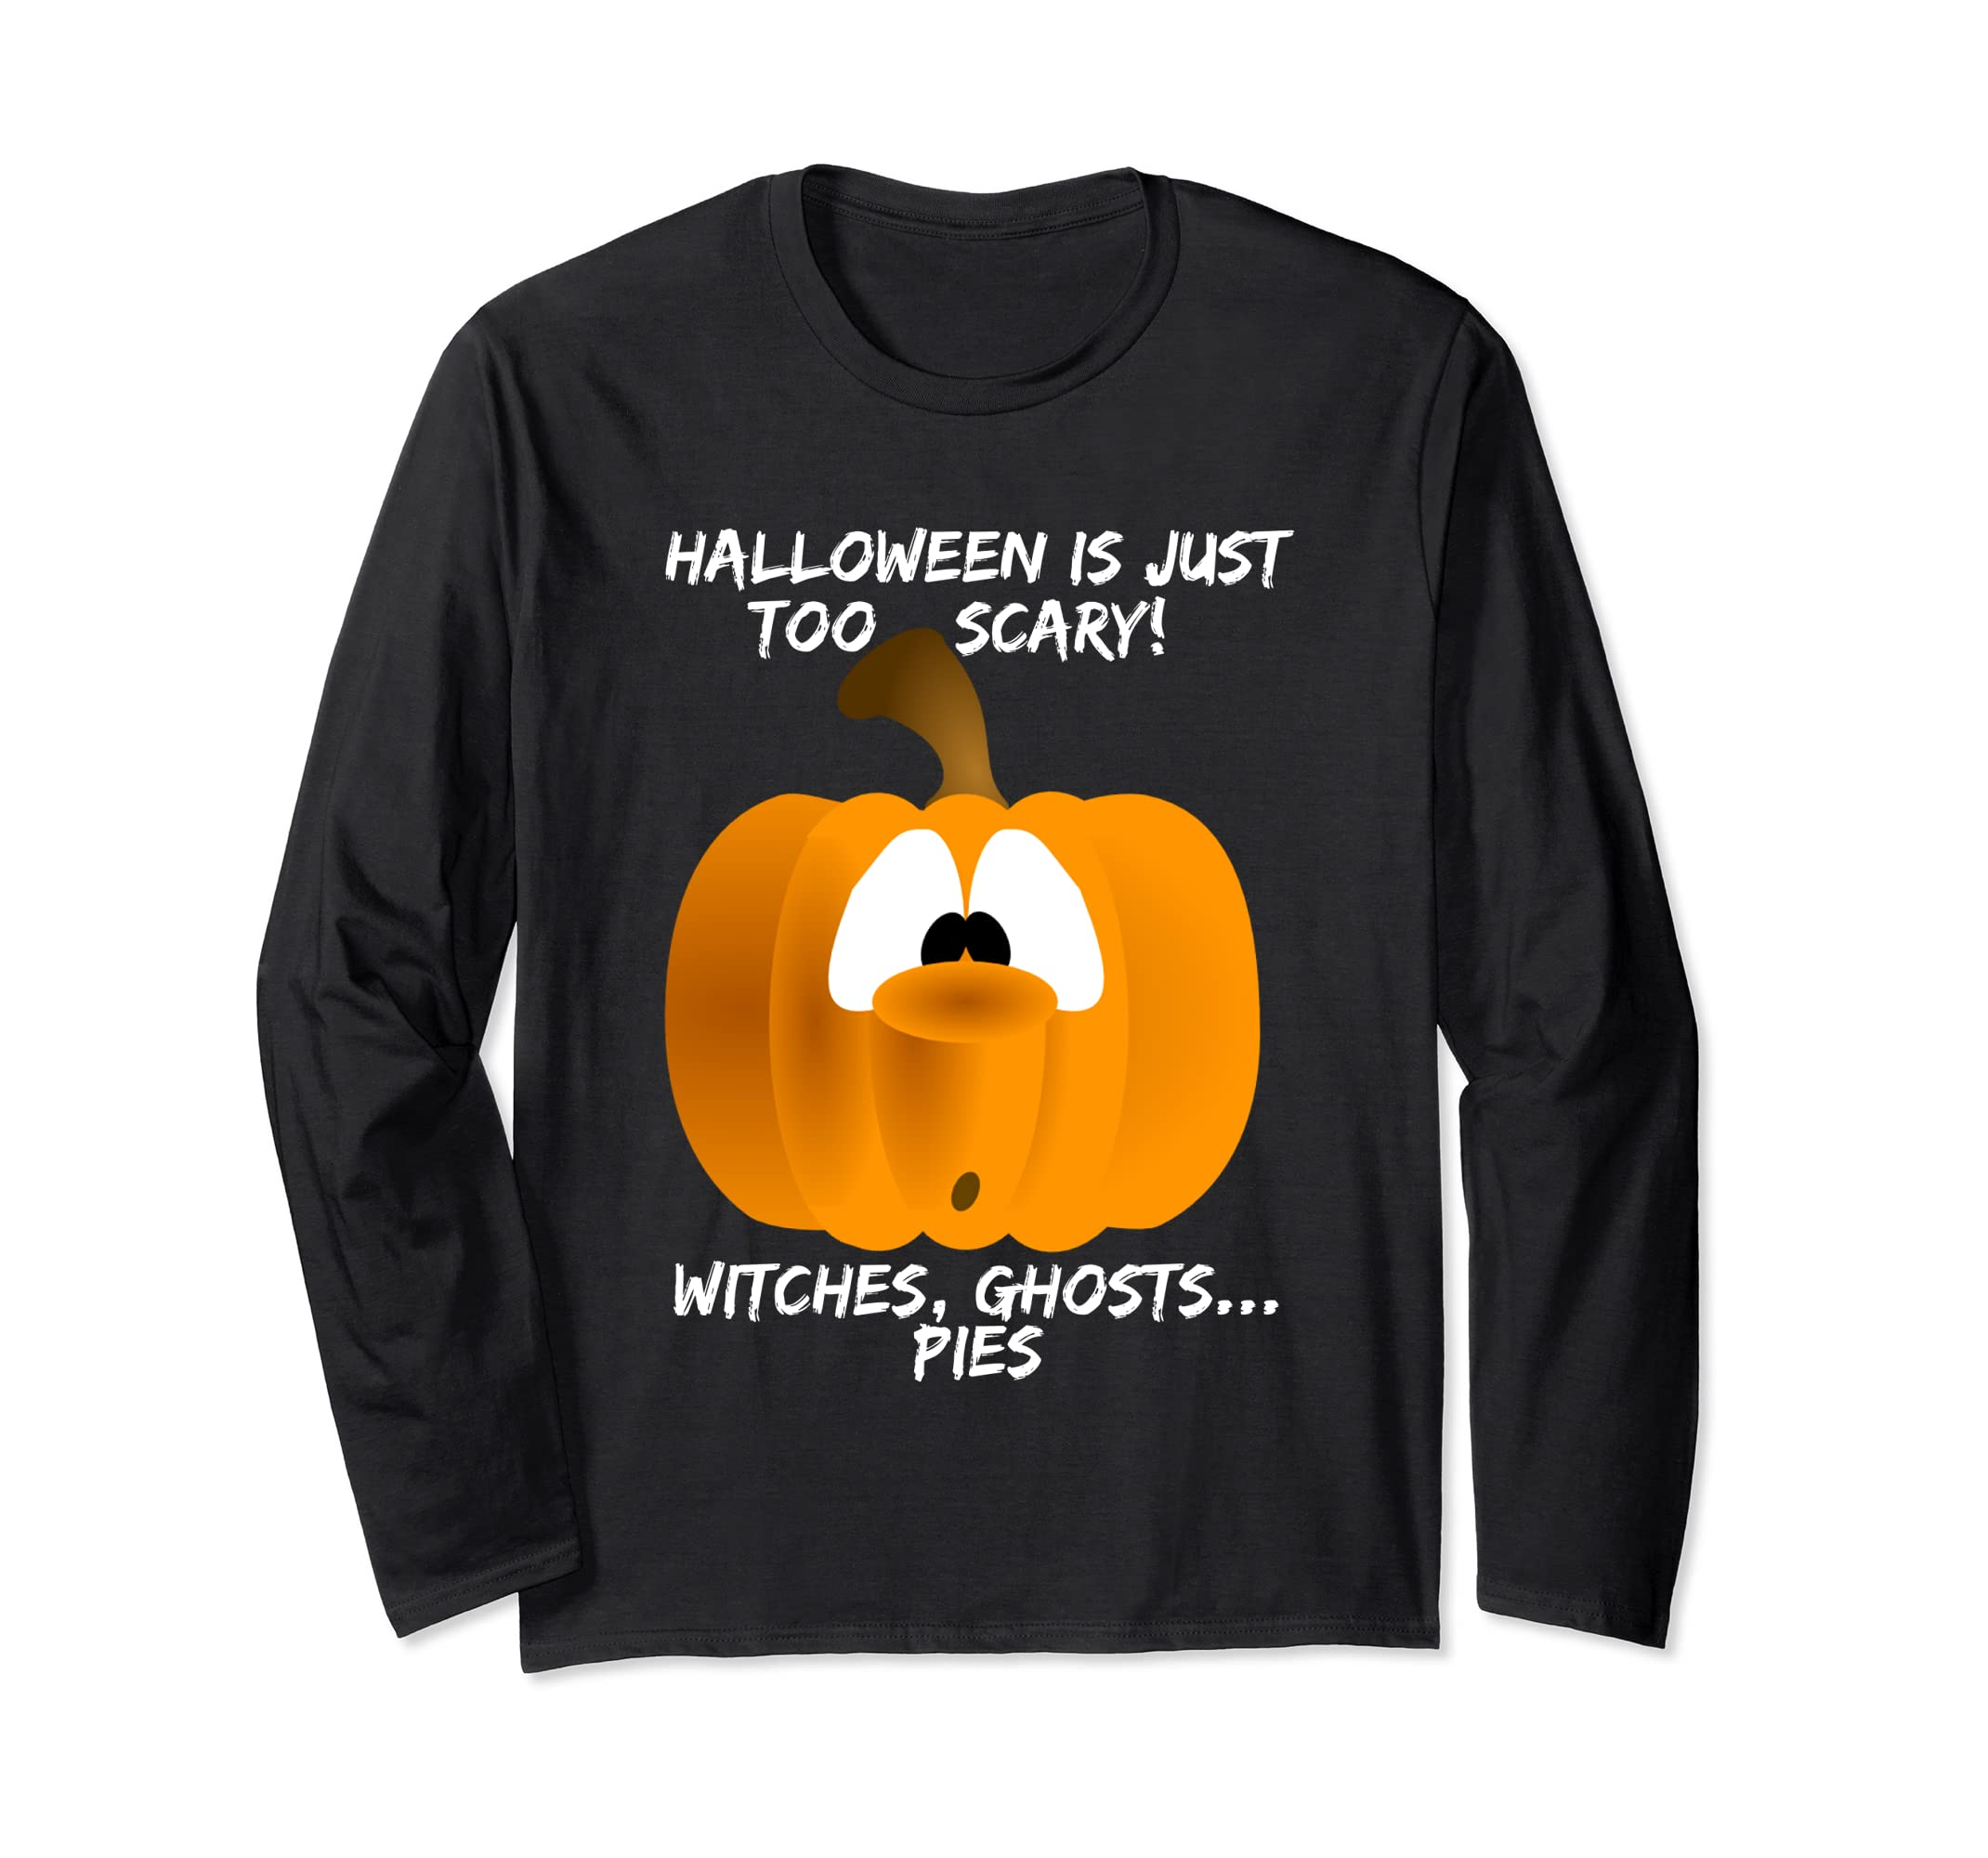 Halloween Pumpkin Scary Humor Sarcastic Wit Shirt Silly-Bawle